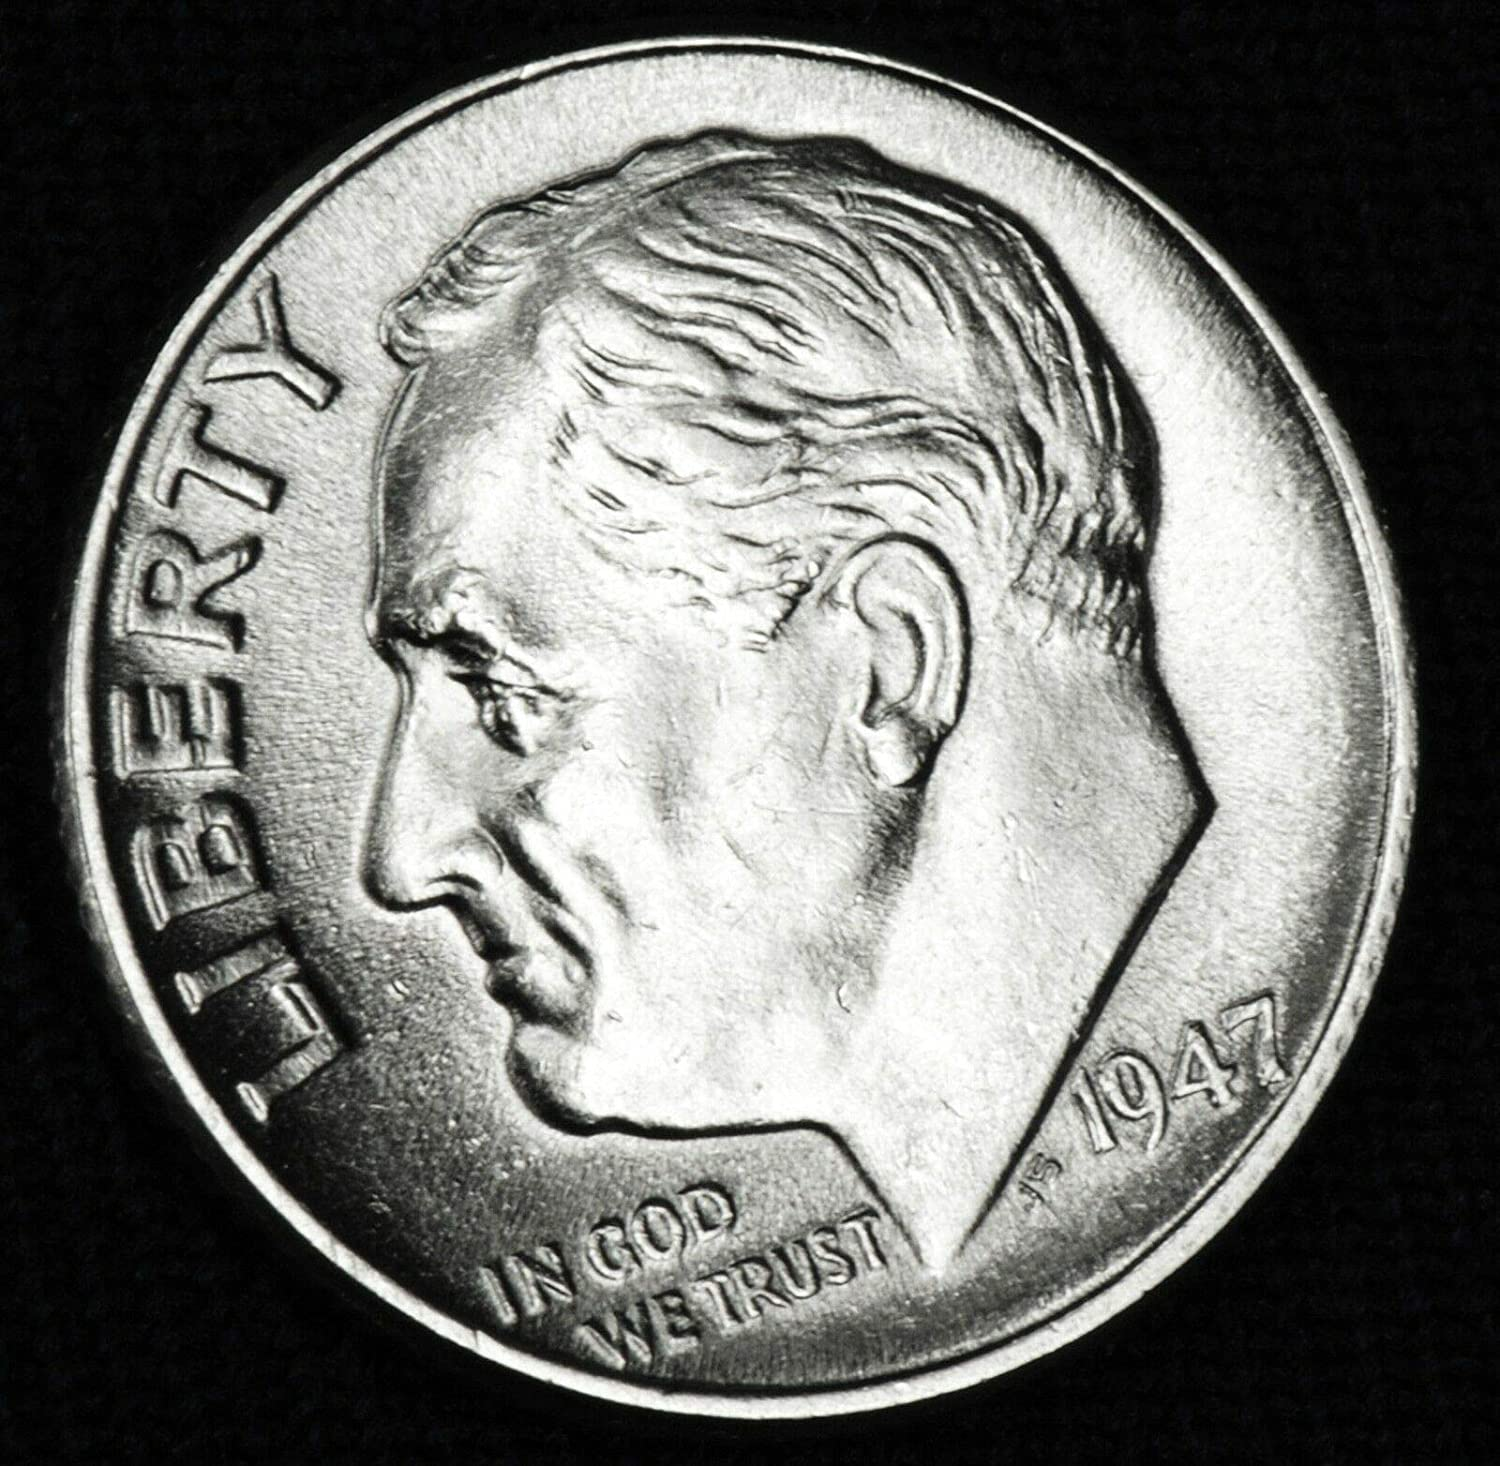 Gem Brilliant Uncirculated 1947 P Silver Roosevelt Dime US Mint Exceptional Quality Mint State